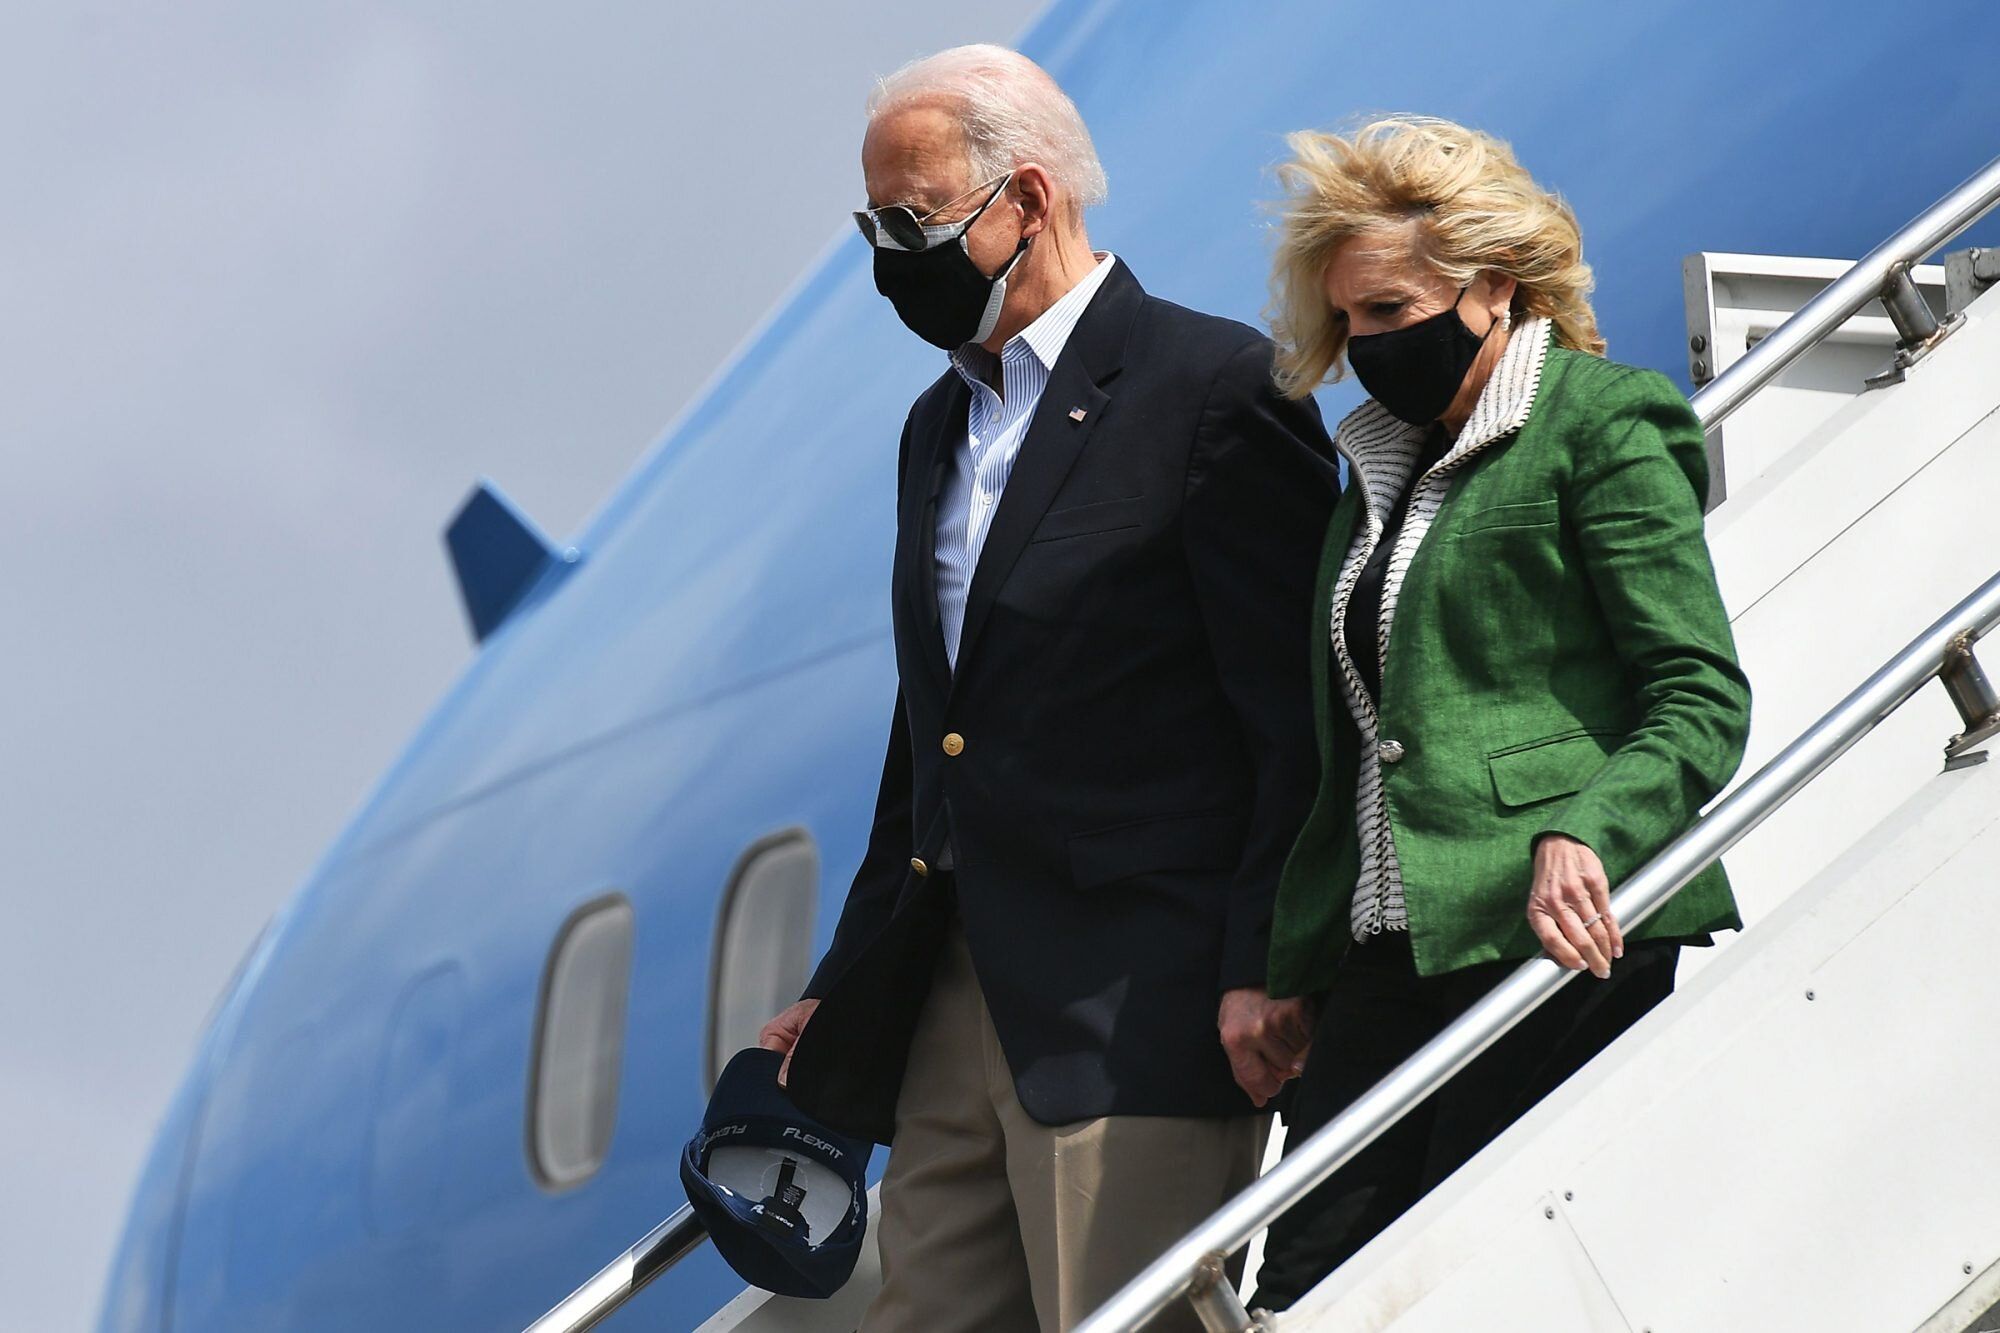 The Serious Side - part 8 - Page 19 Image?url=https%3A%2F%2Fstatic.onecms.io%2Fwp-content%2Fuploads%2Fsites%2F20%2F2021%2F02%2F26%2Fjoe-biden-1-2000